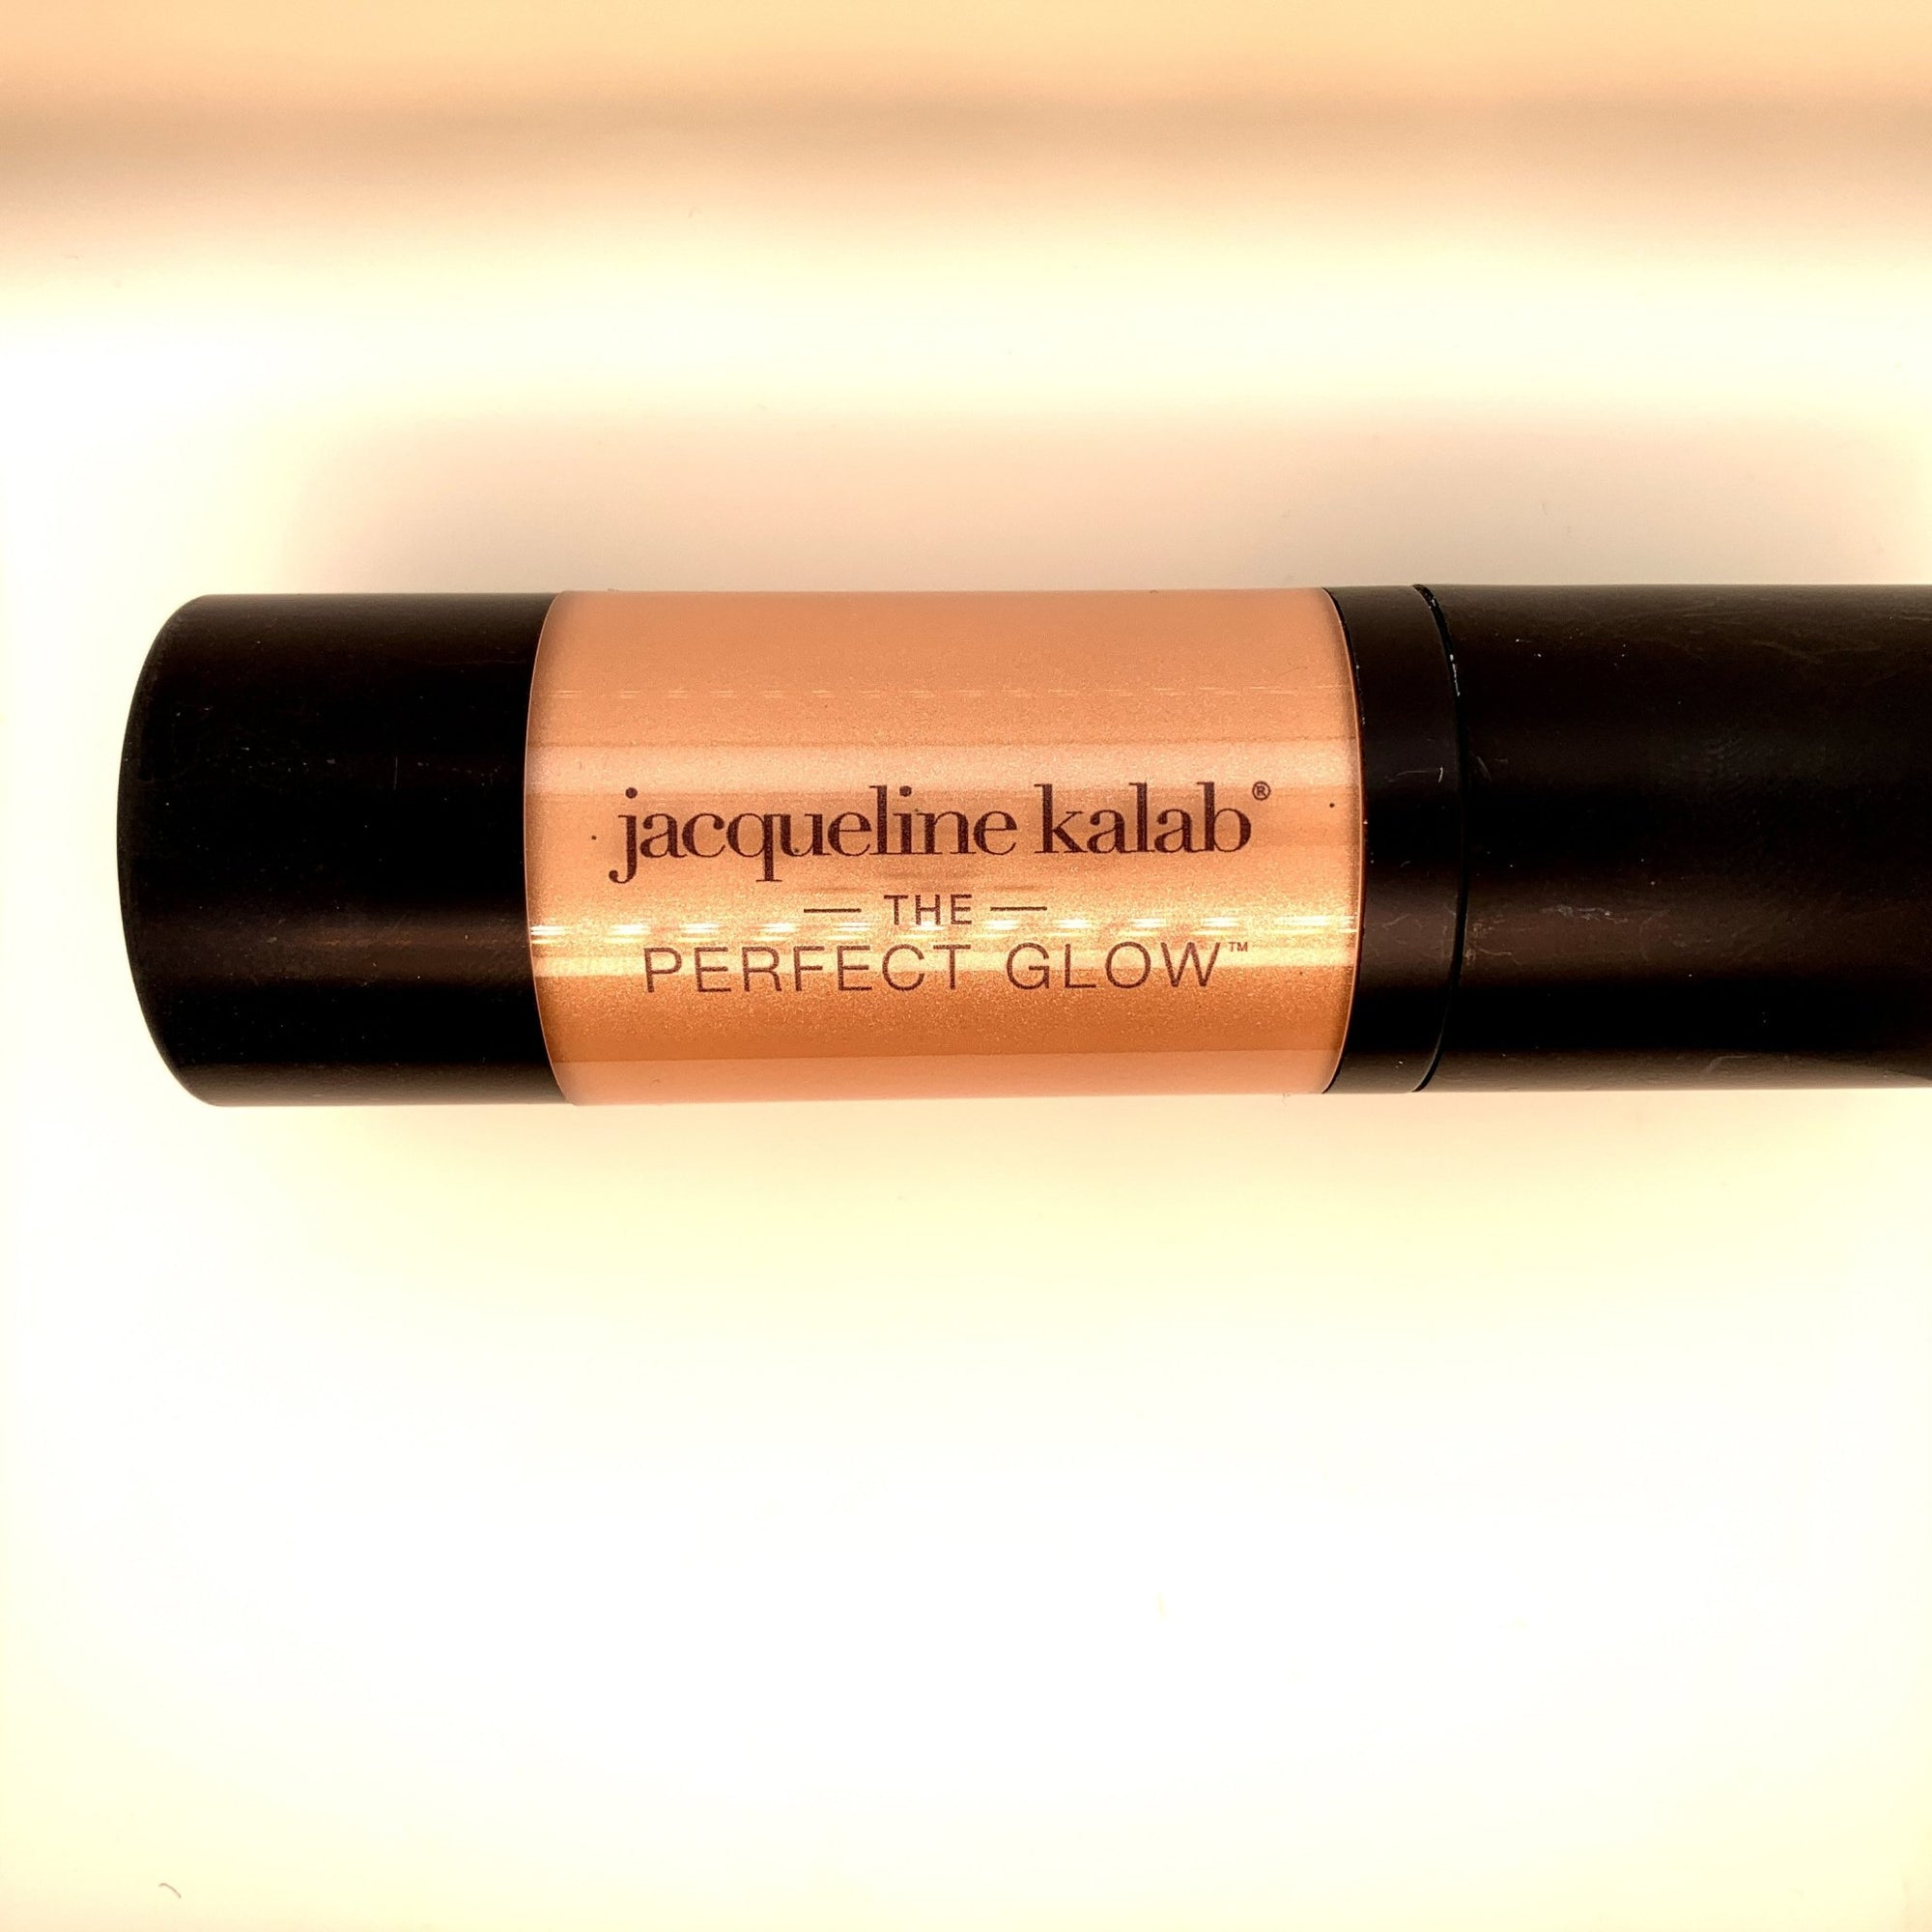 The Perfect Glow - Illuminator Highlighter Perfection Liquid - by Jacqueline Kalab - Jacqueline Kalab Beauty